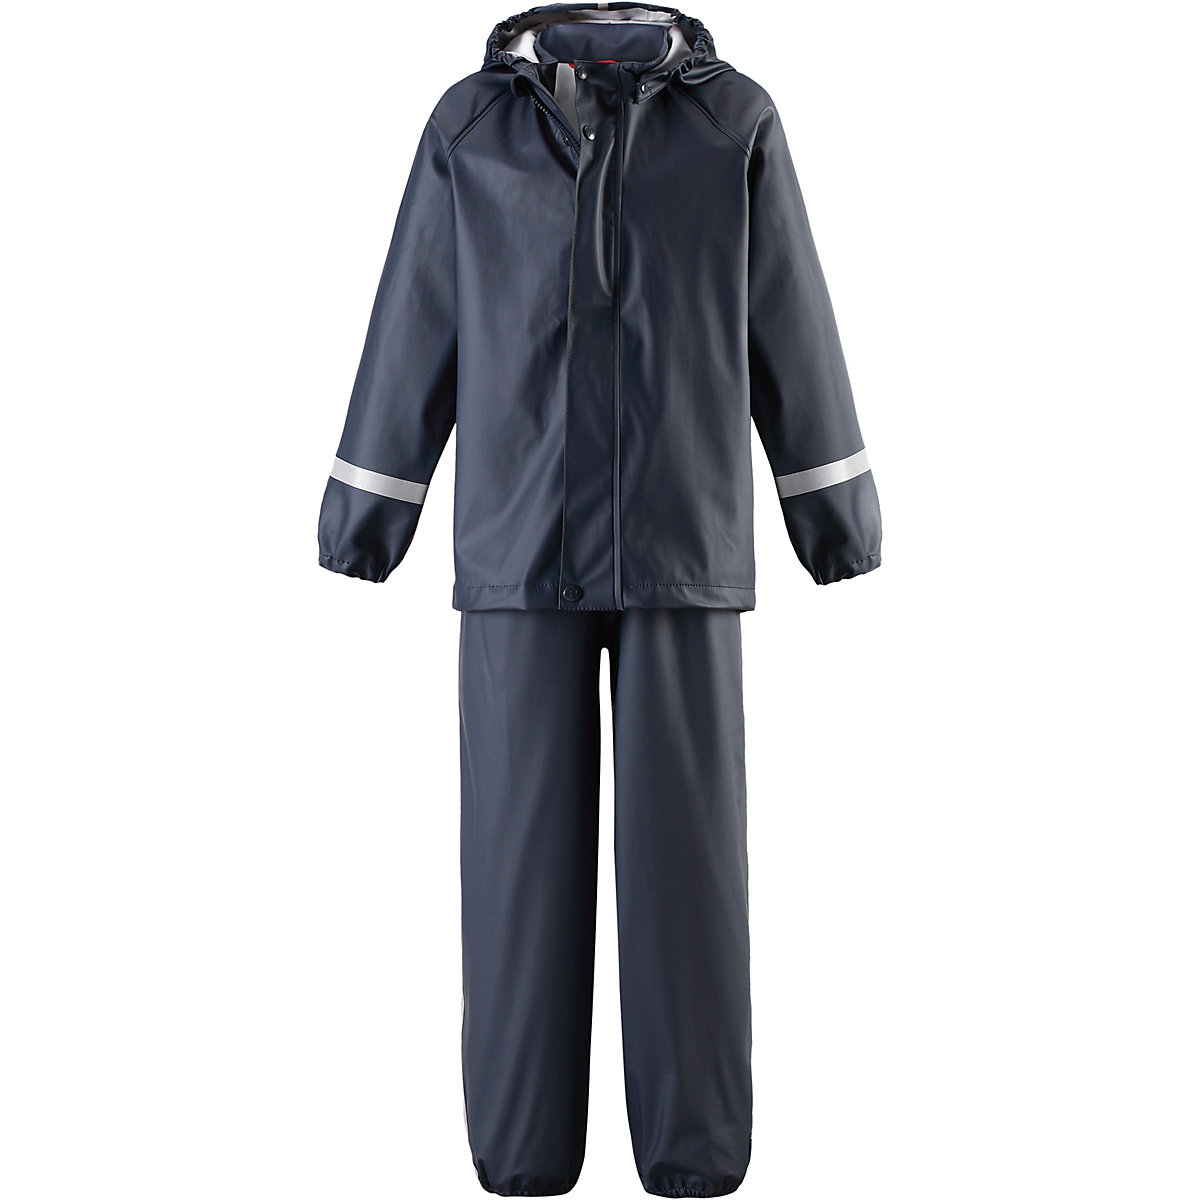 REIMA Childrens Sets 8739561 for boys and girls children clothing winter stuff Suit set Jacket pants retail children s sports suit boys and girls 3 12 years old children big virgin suit uniforms spring clothes jacket trousers 1